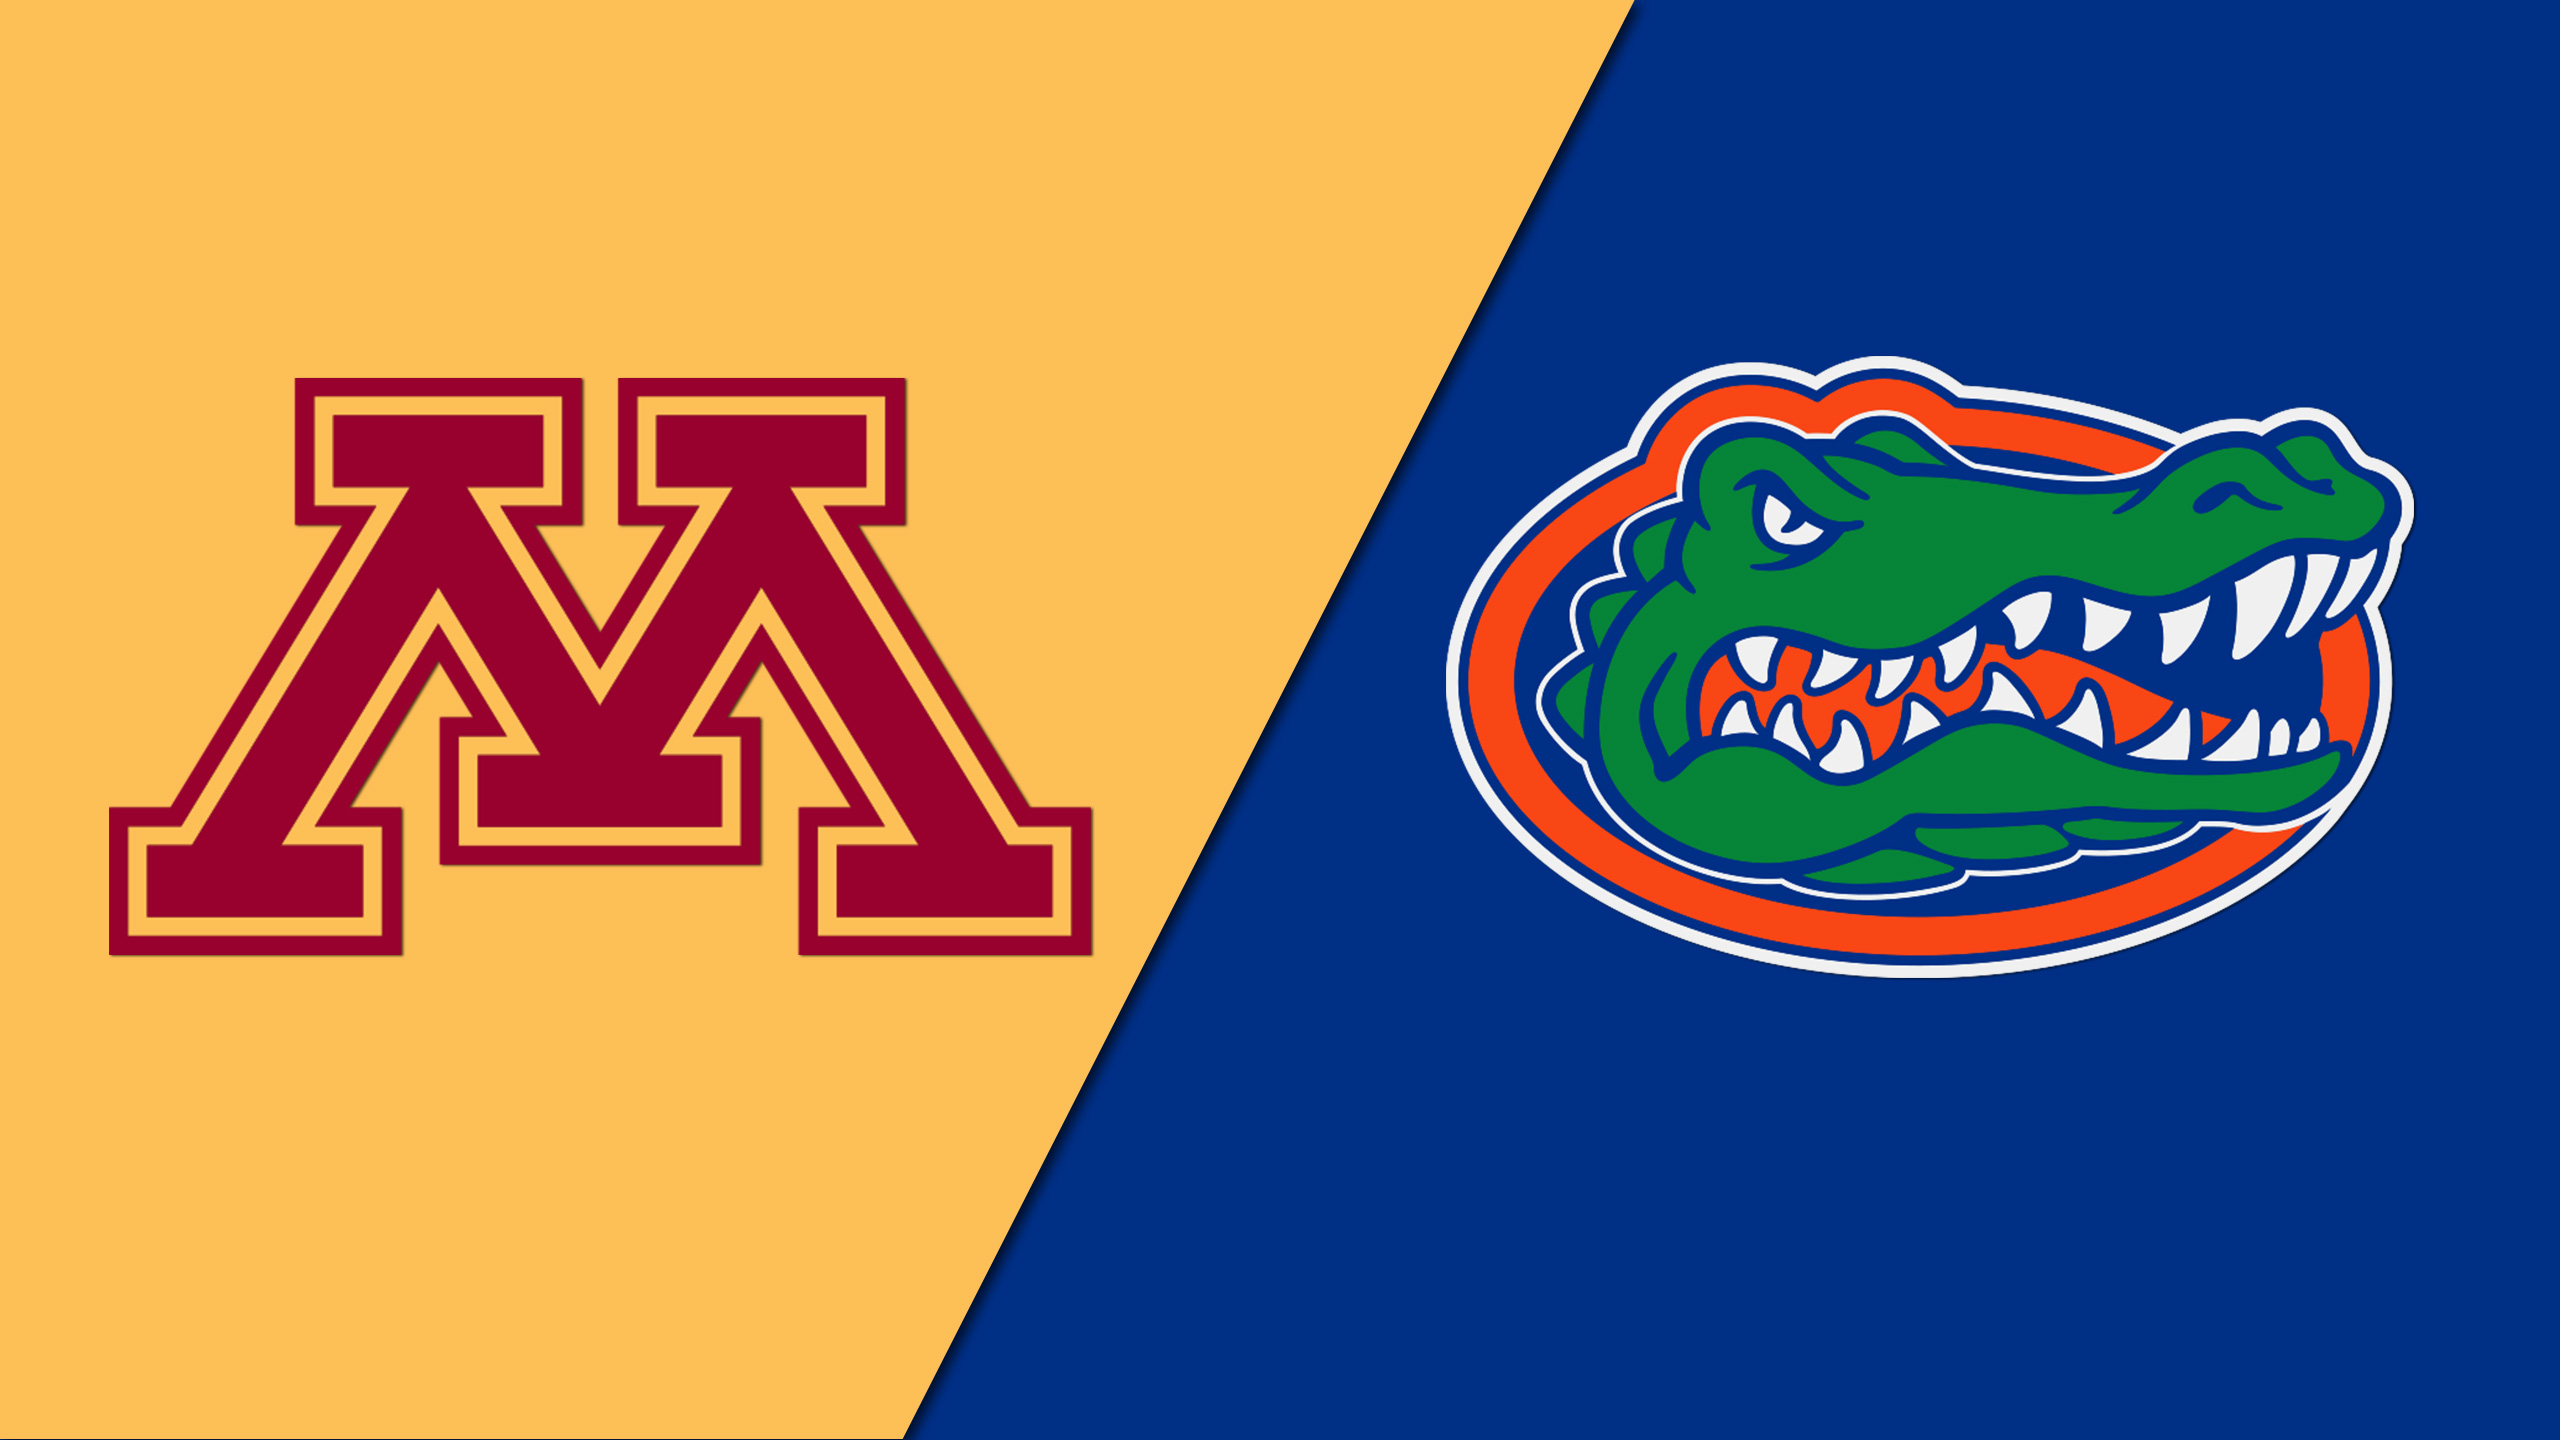 #19 Minnesota vs. #7 Florida (Softball) (re-air)